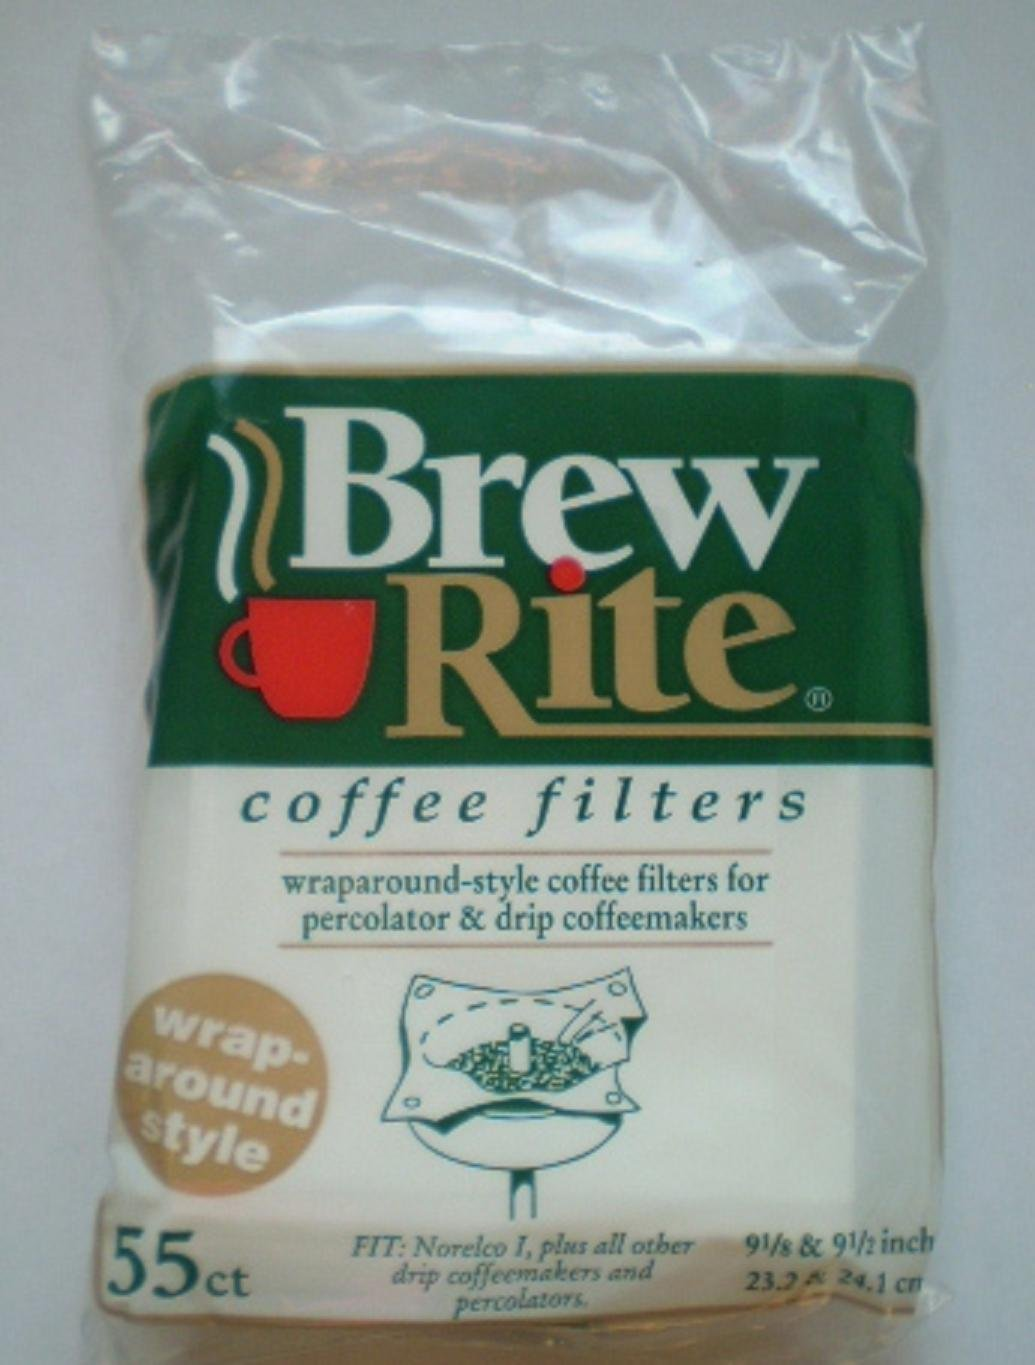 Brew Rite Wrap Around Percolator Coffee Filters 55 Count - Buy Fast delivery